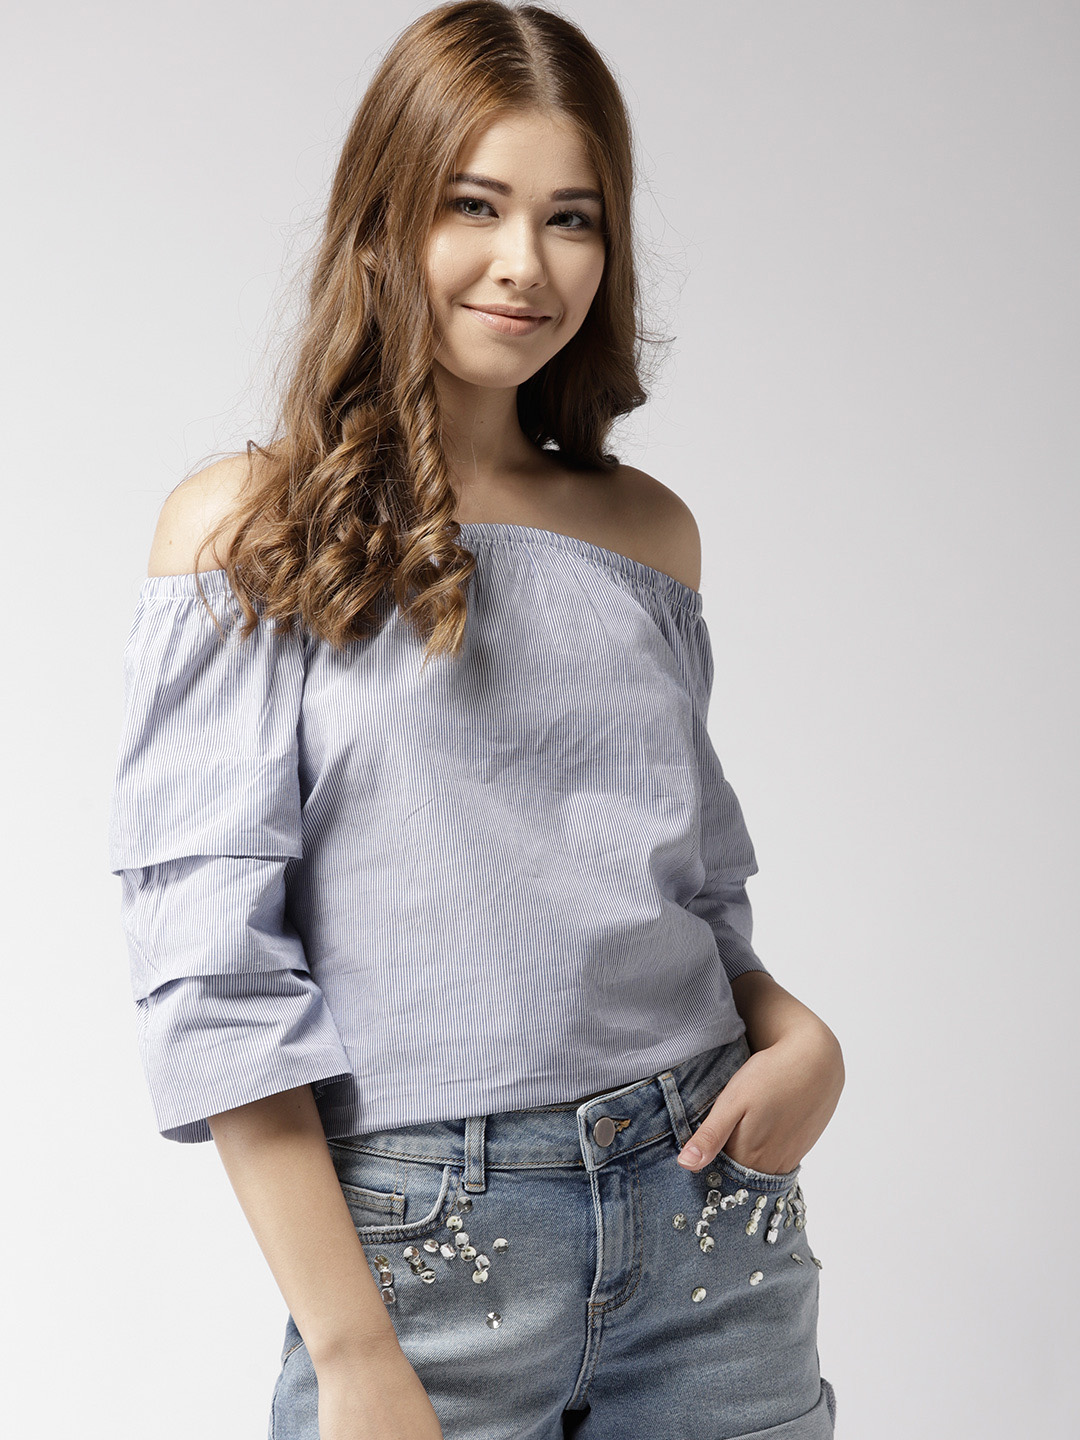 Tops-The Cool Wave Striped Top1